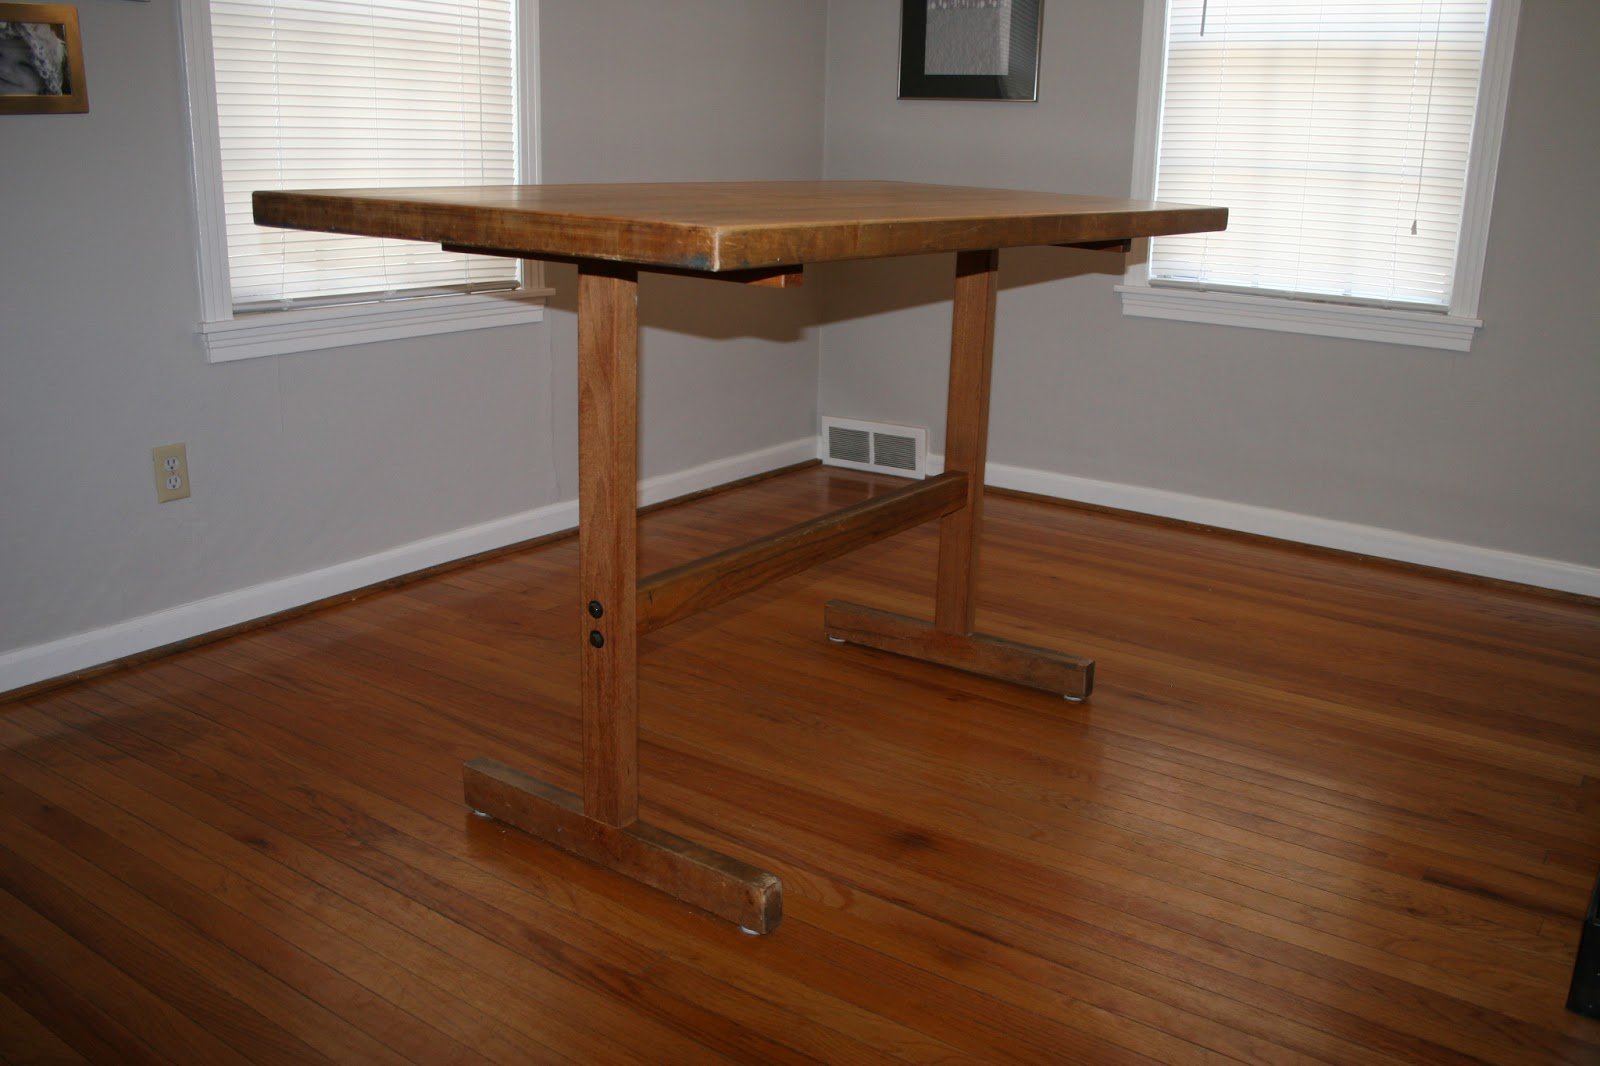 Rcd woodworks kitchen table refurb july 4 2012 for Table th 00 02